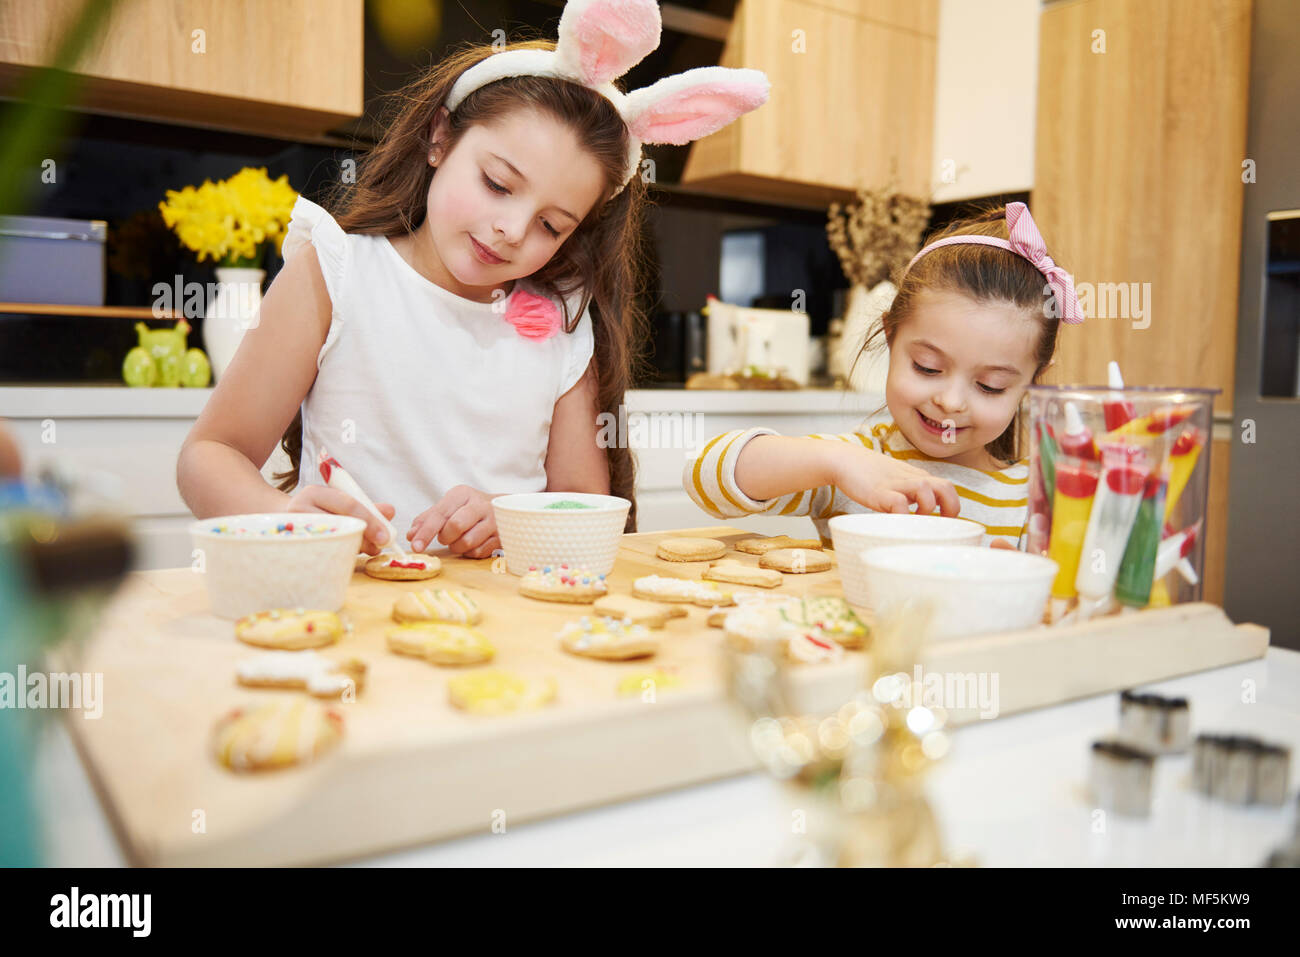 Sisters decorating Easter cookies in kitchen - Stock Image